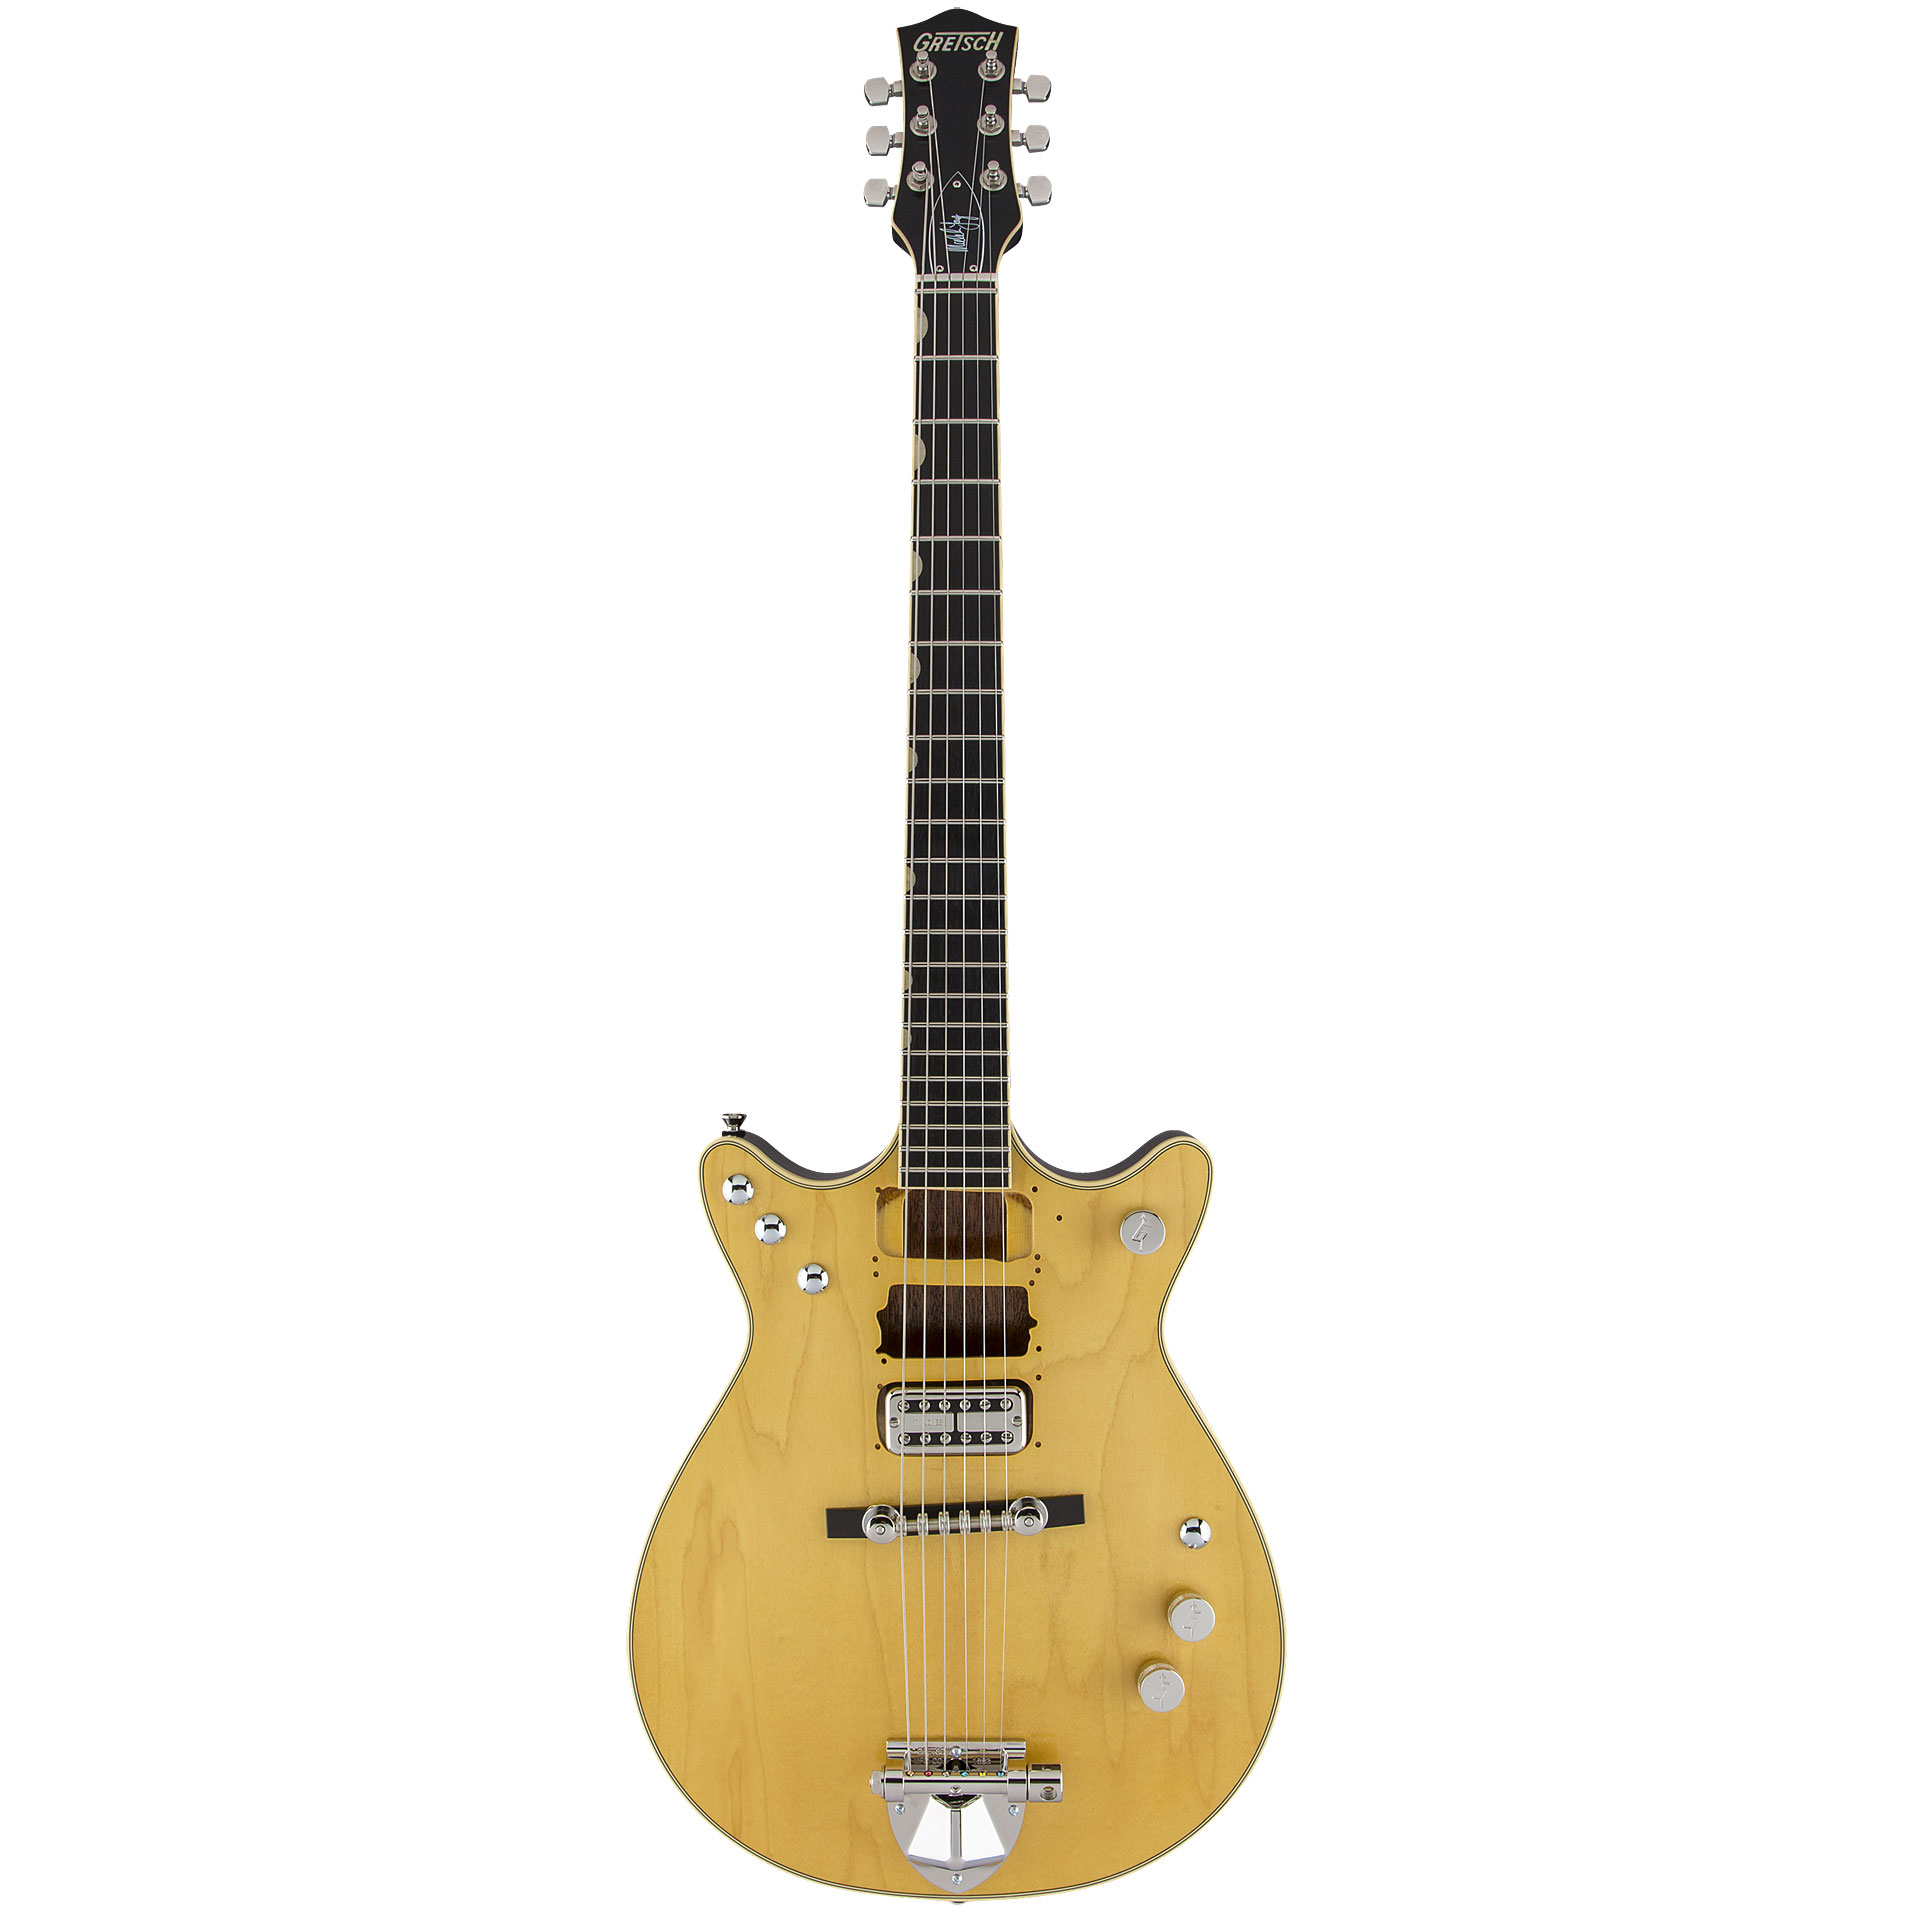 gretsch guitars g6131 my malcolm young signature 10109517 electric guitar. Black Bedroom Furniture Sets. Home Design Ideas